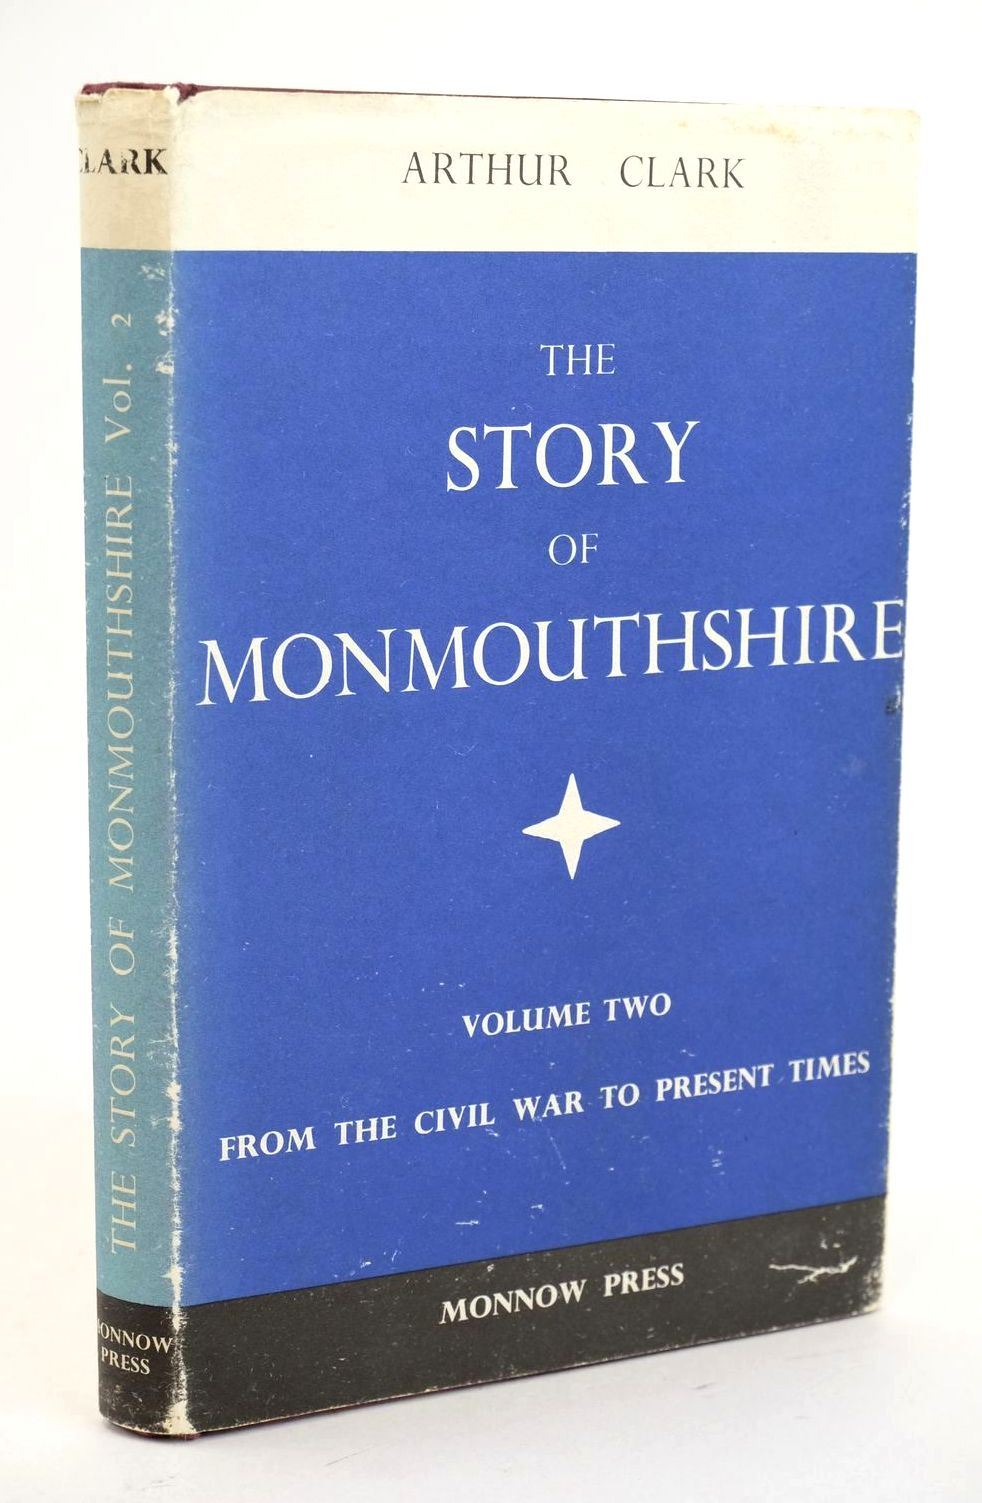 Photo of THE STORY OF MONMOUTHSHIRE VOLUME TWO written by Clark, Arthur published by Monnow Press (STOCK CODE: 1319156)  for sale by Stella & Rose's Books